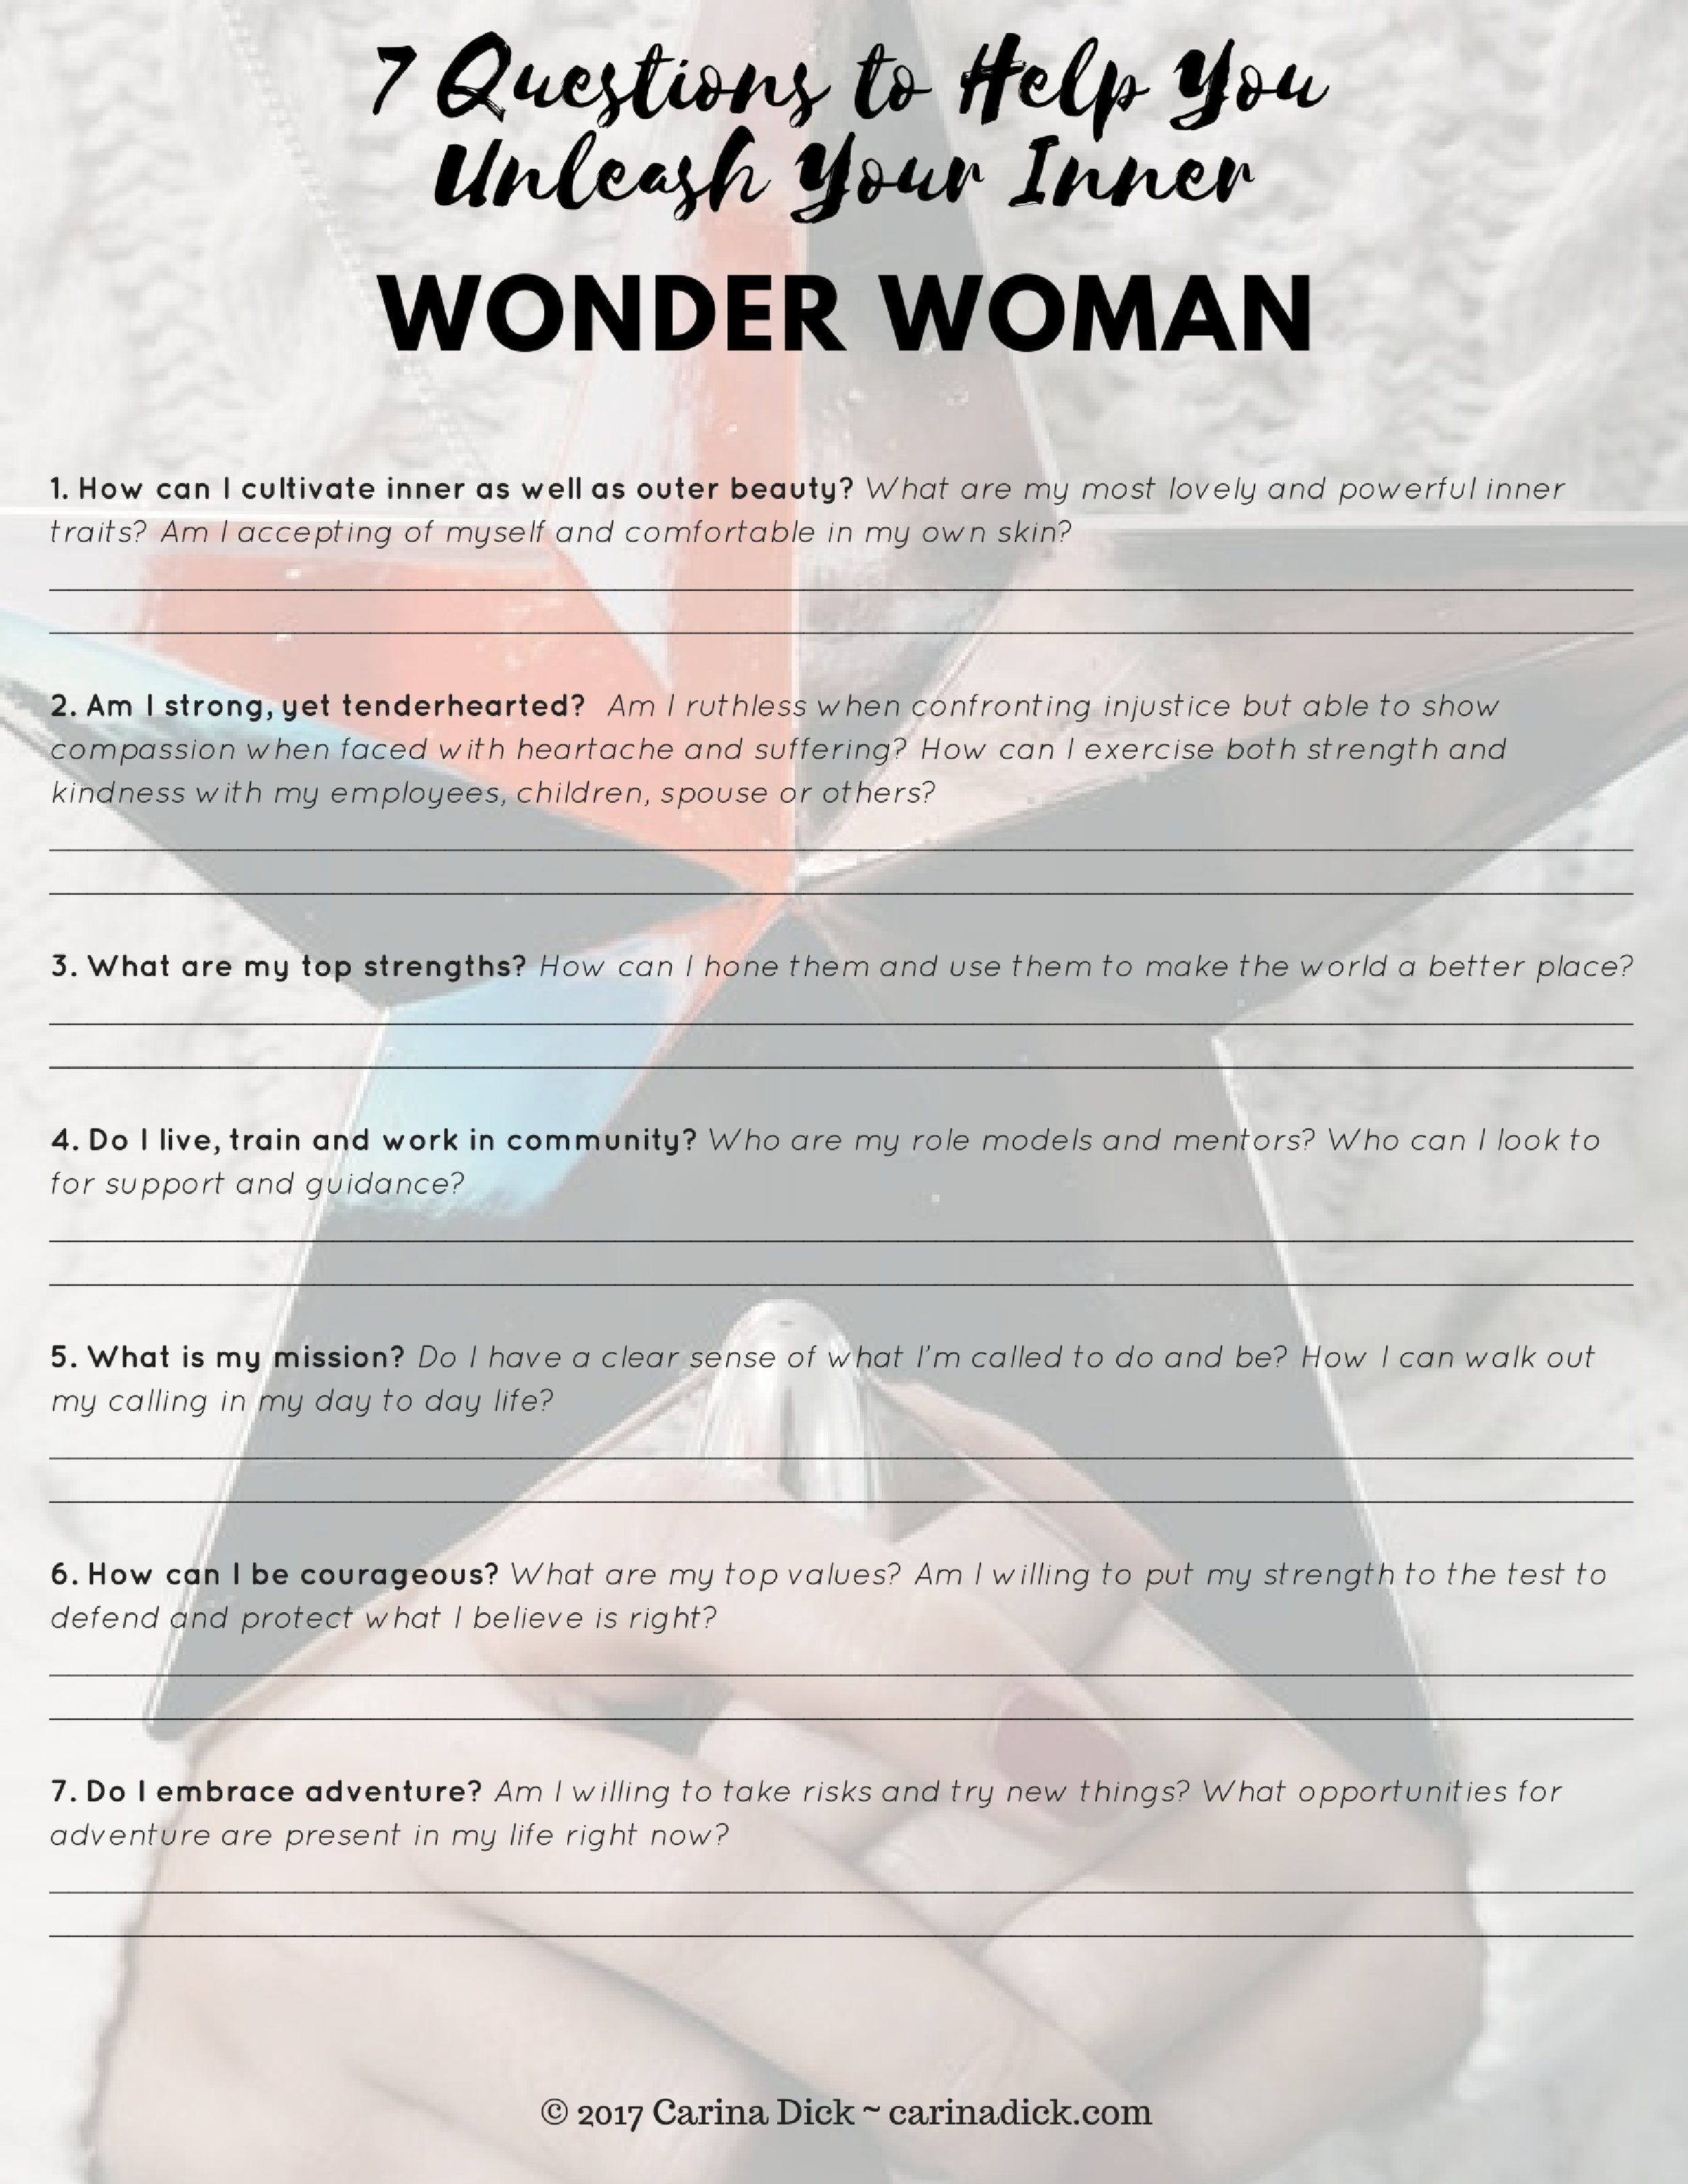 Wonder Woman 7 Questions.jpg